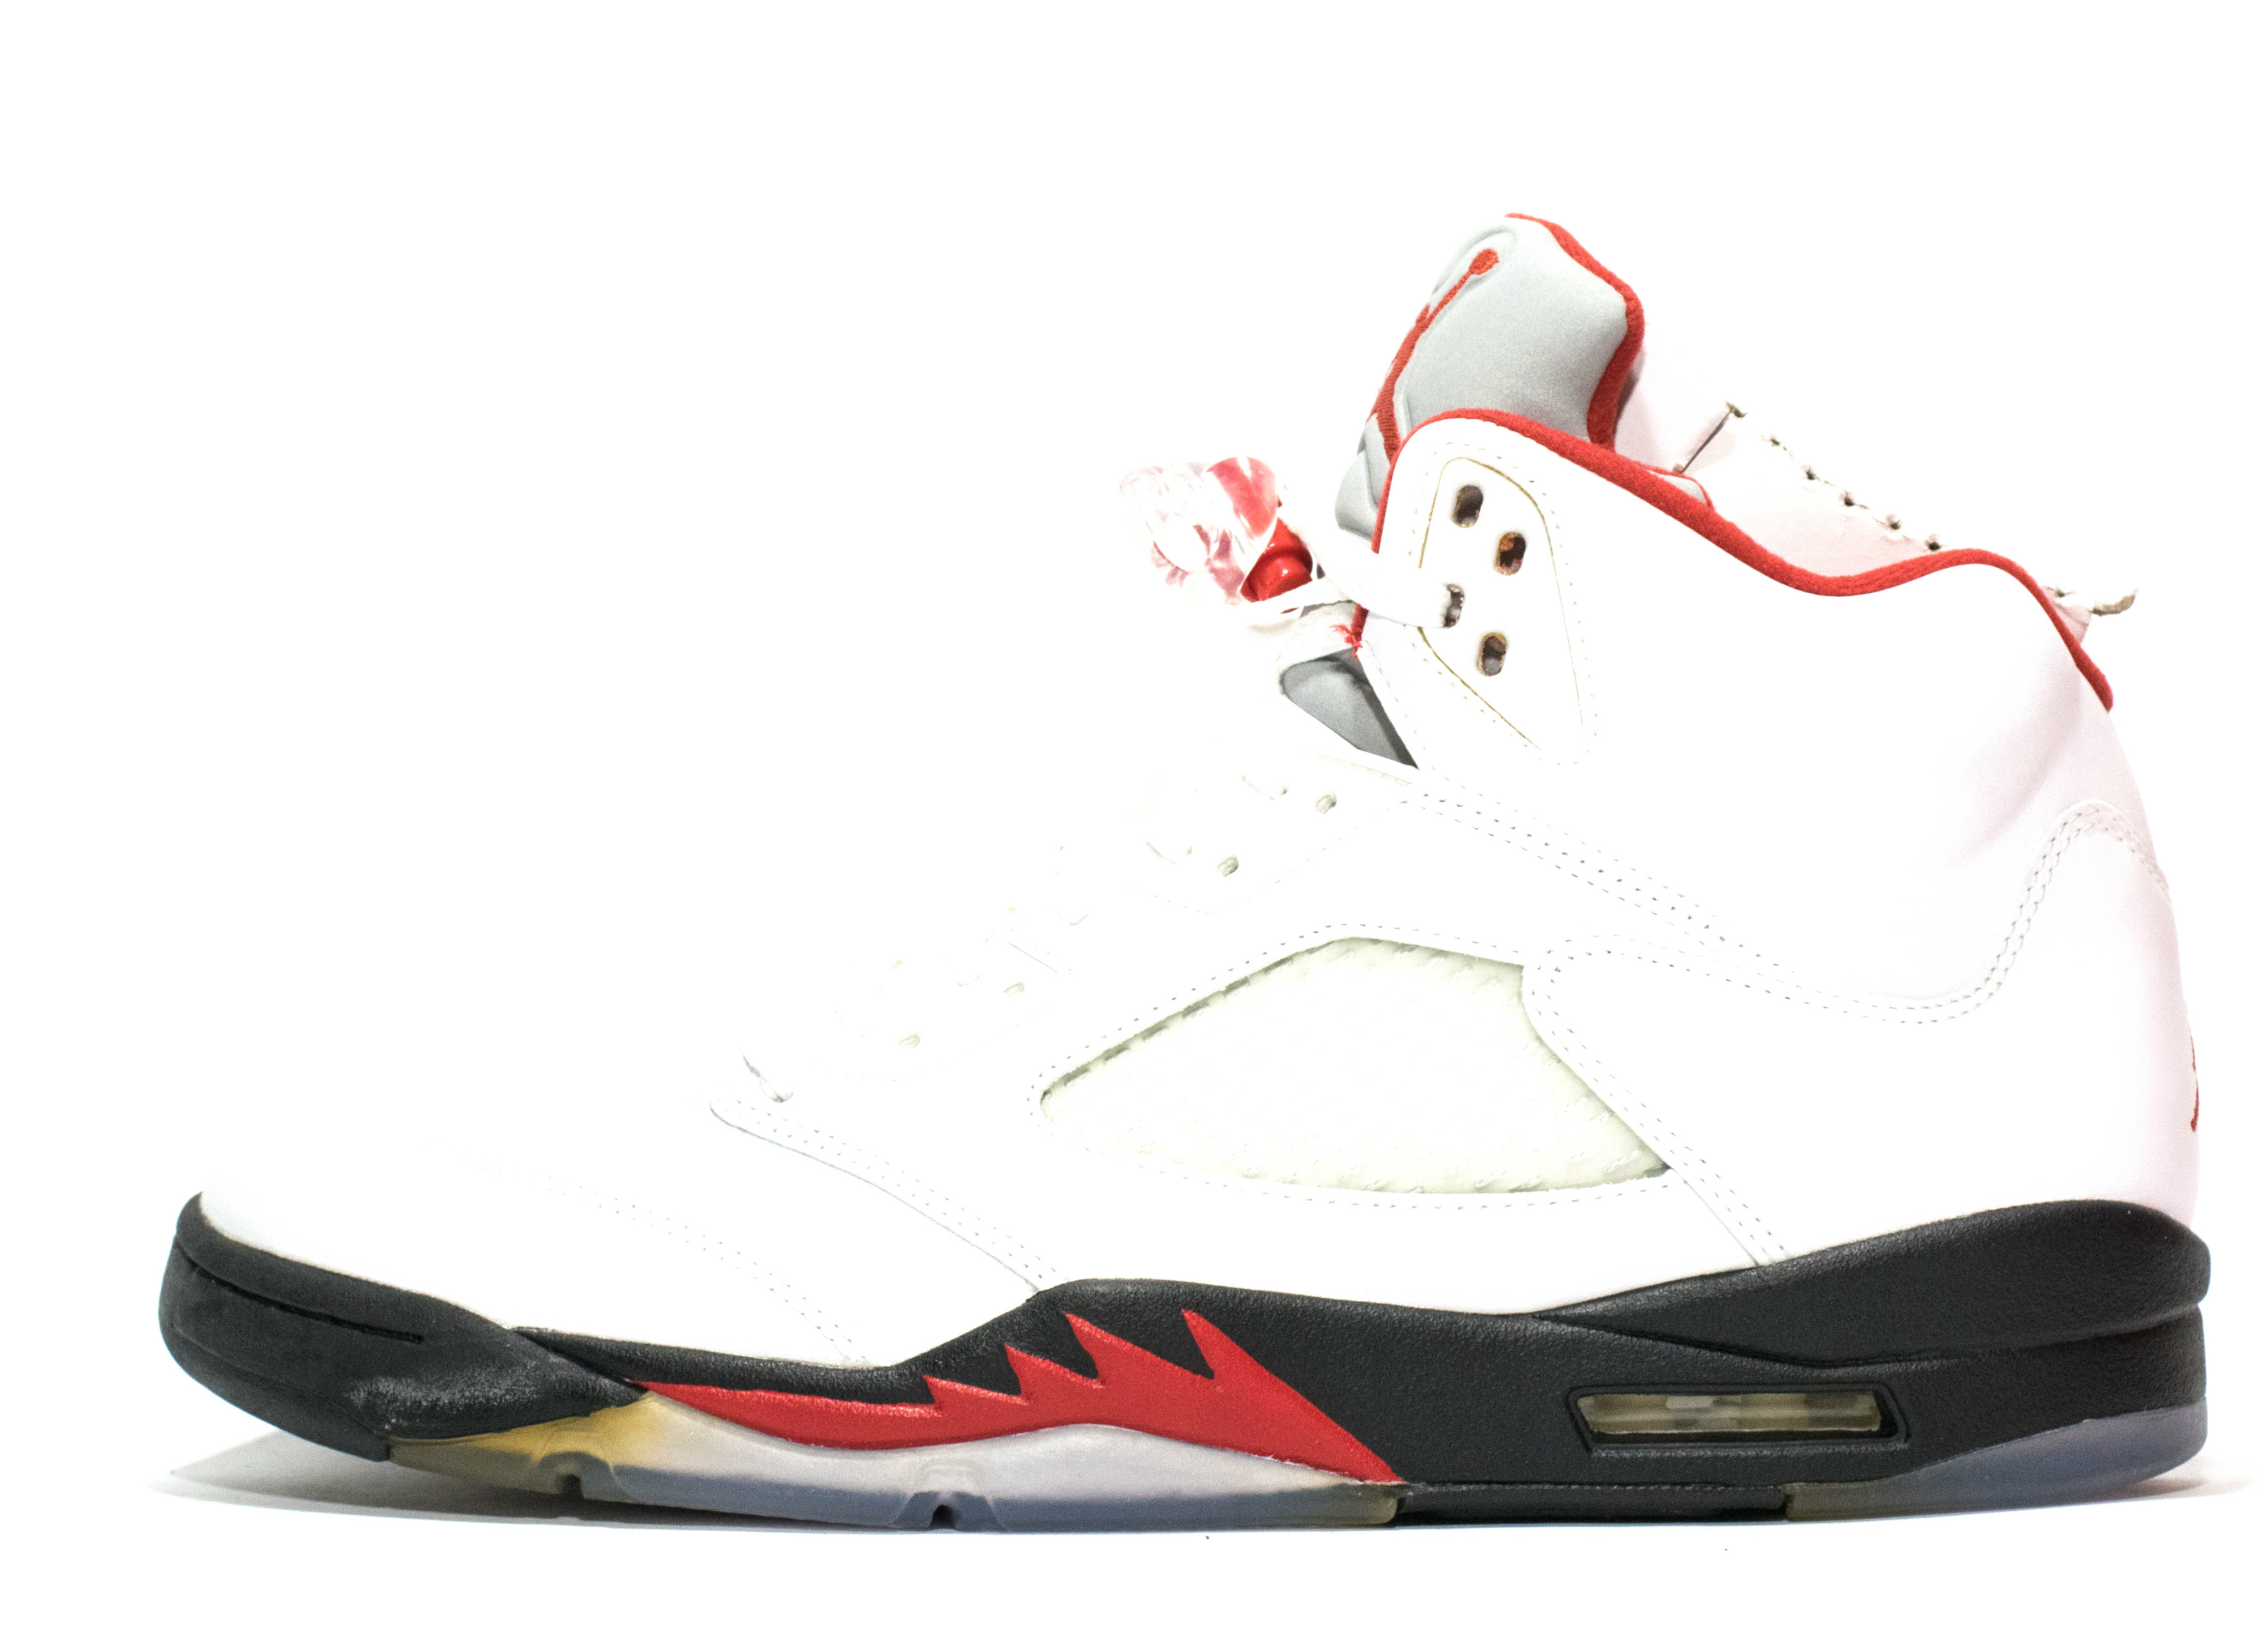 reputable site 3b223 9e3a9 Nike Air Jordan 5 'Fire Red' Deadstock size 11.5